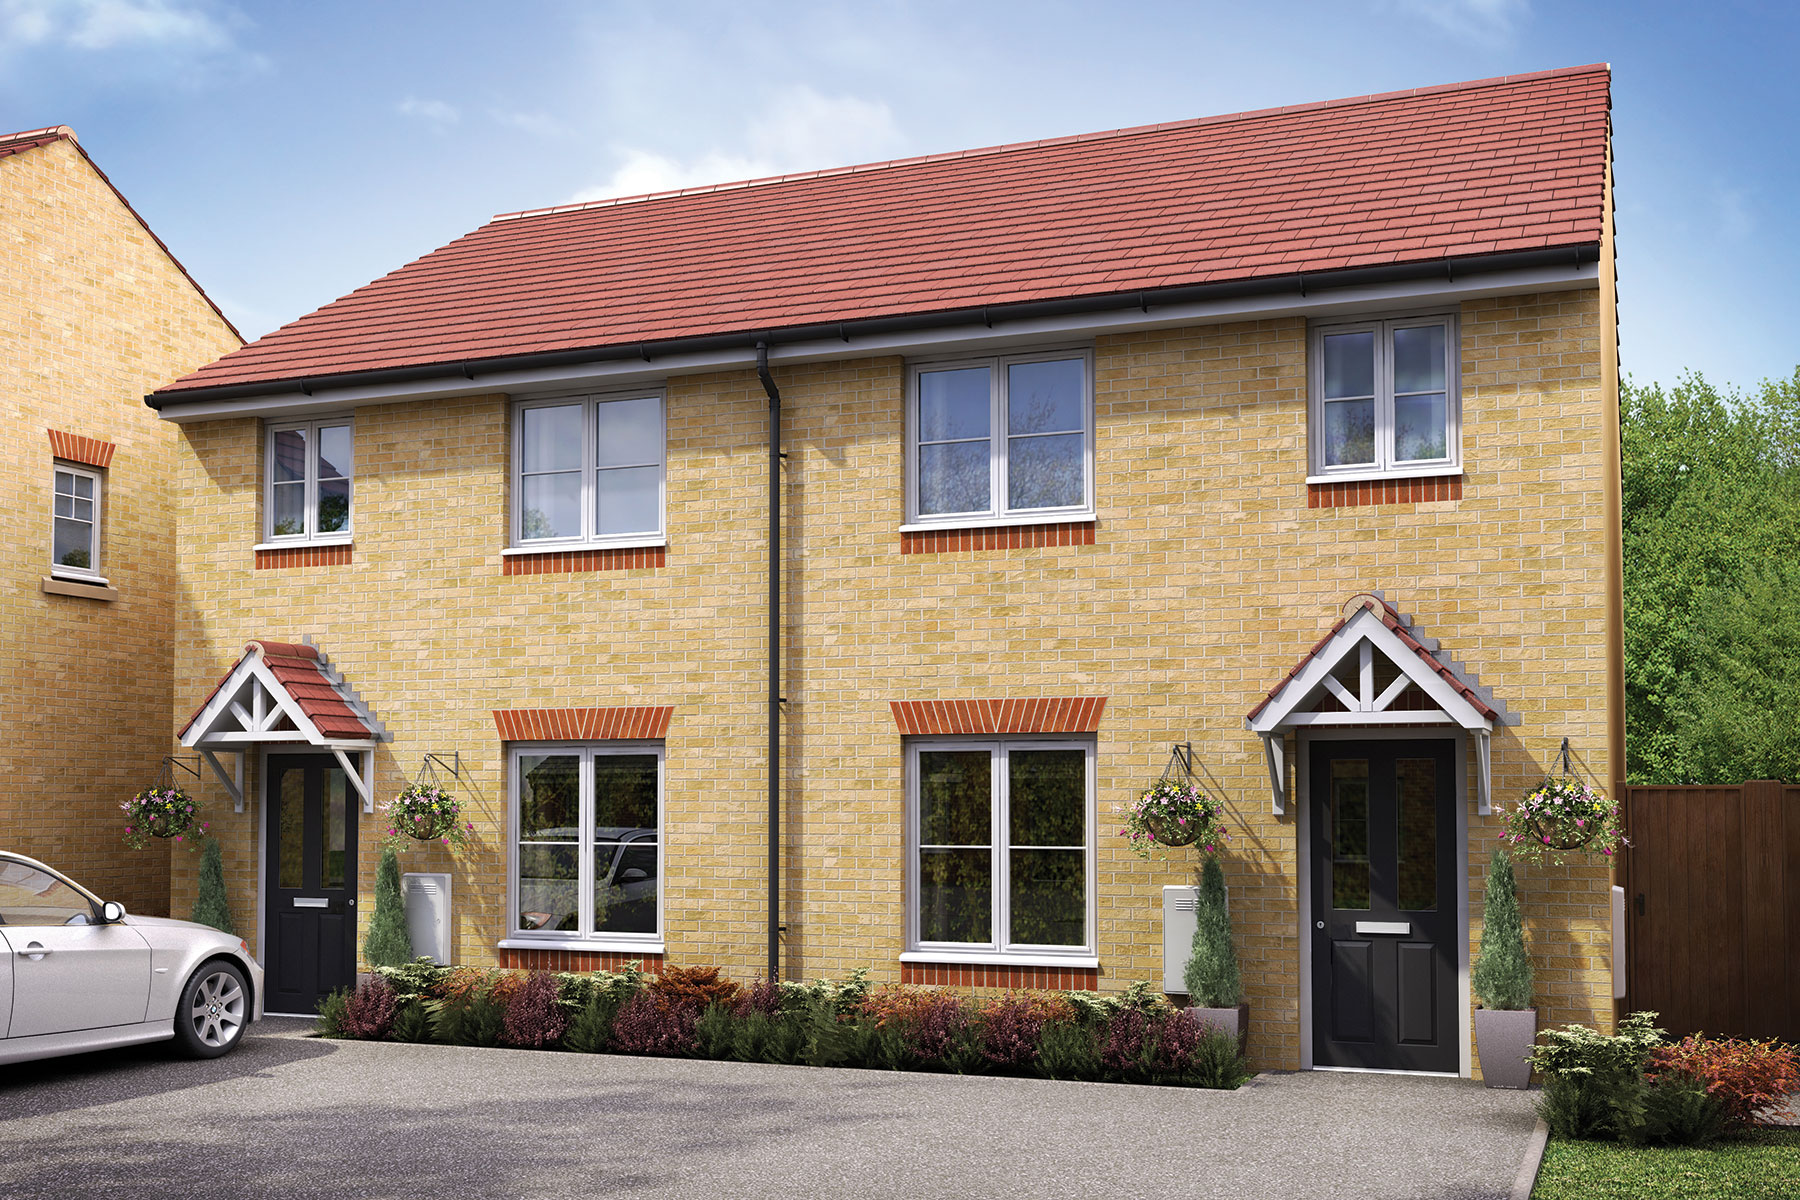 Taylor Wimpey - Exterior - The Gosford - 3 bedroom new home